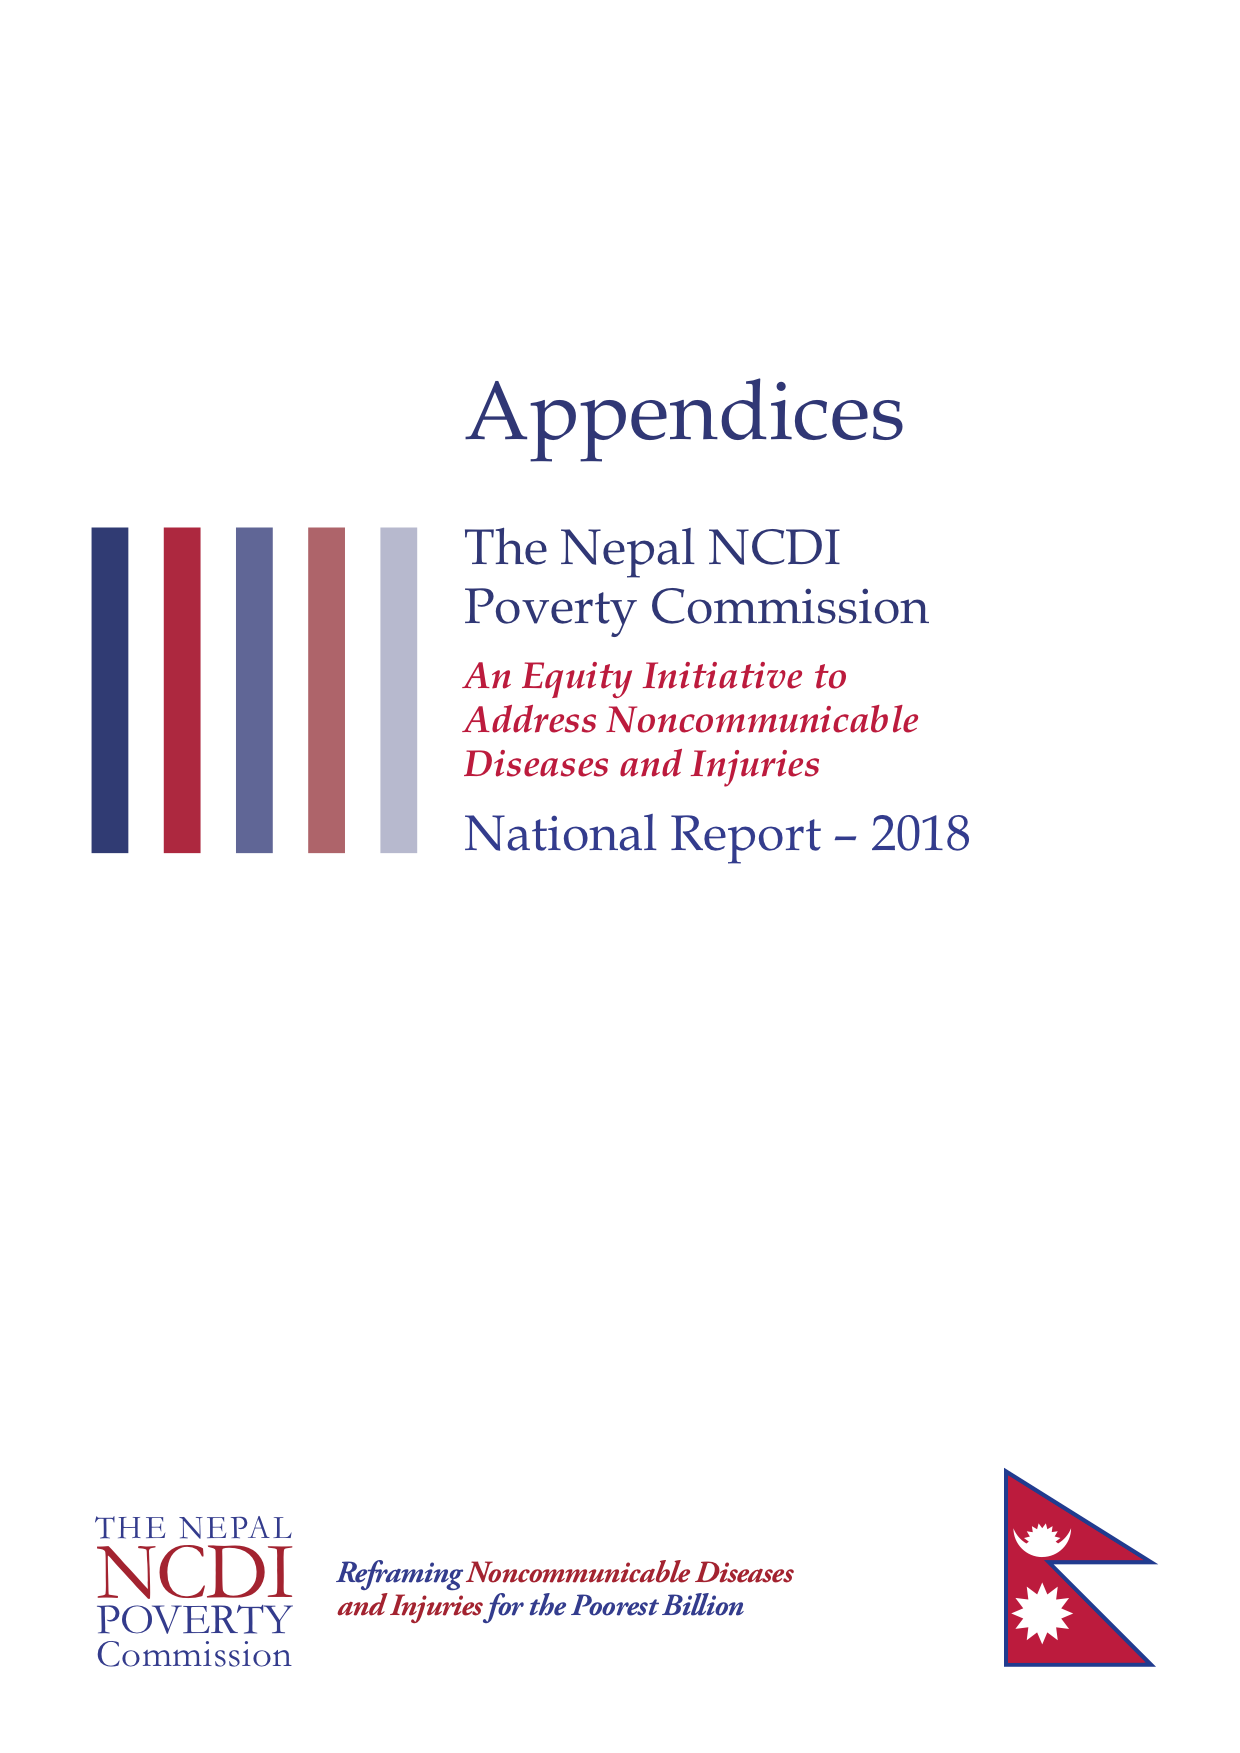 Nepal NCDI Poverty Commission Appendices